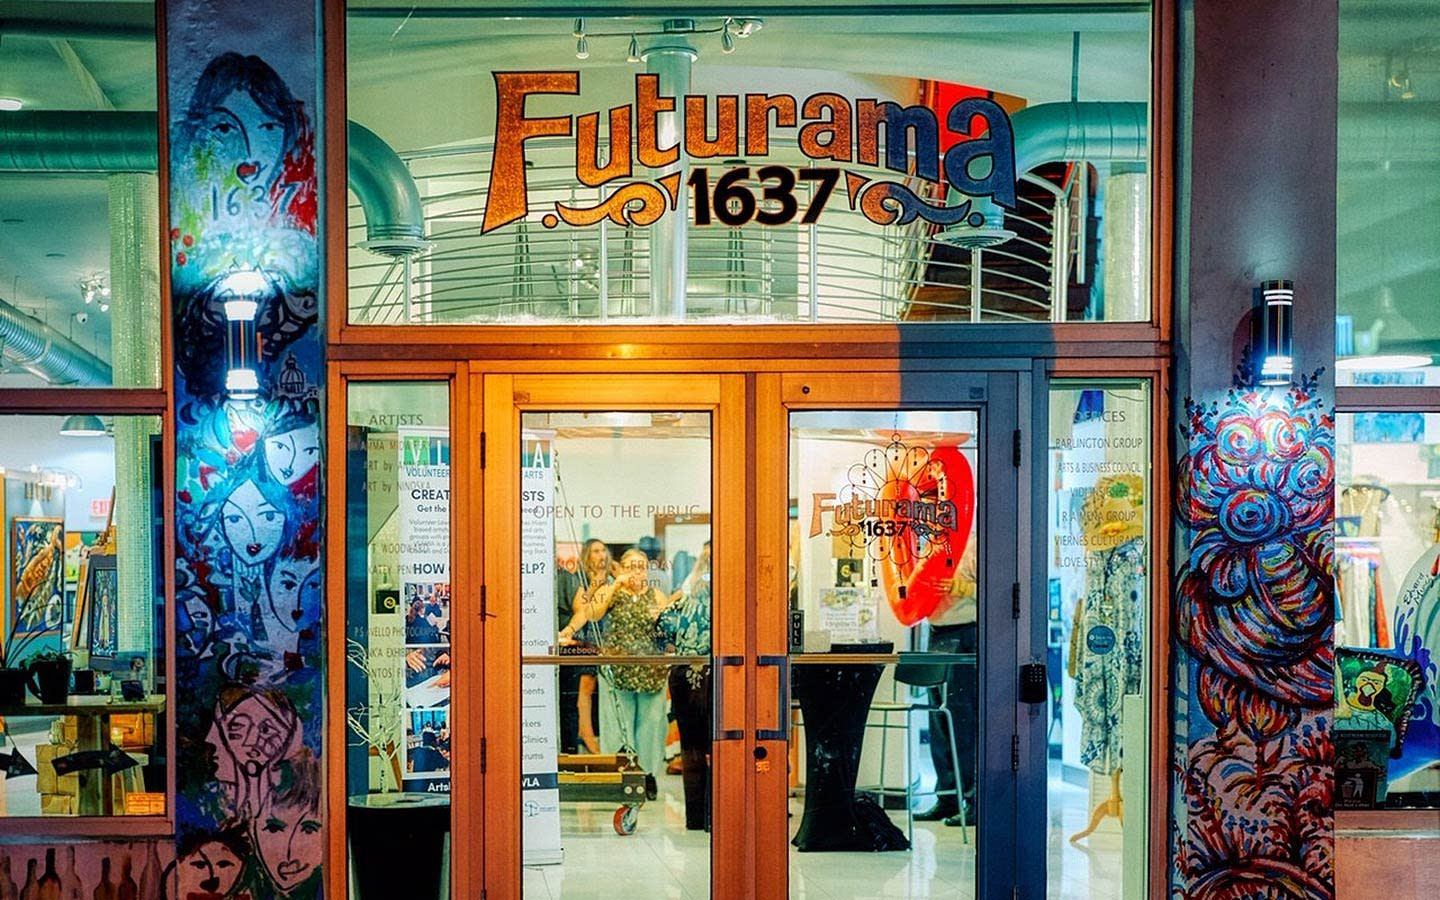 Futurama 1637 Art Building